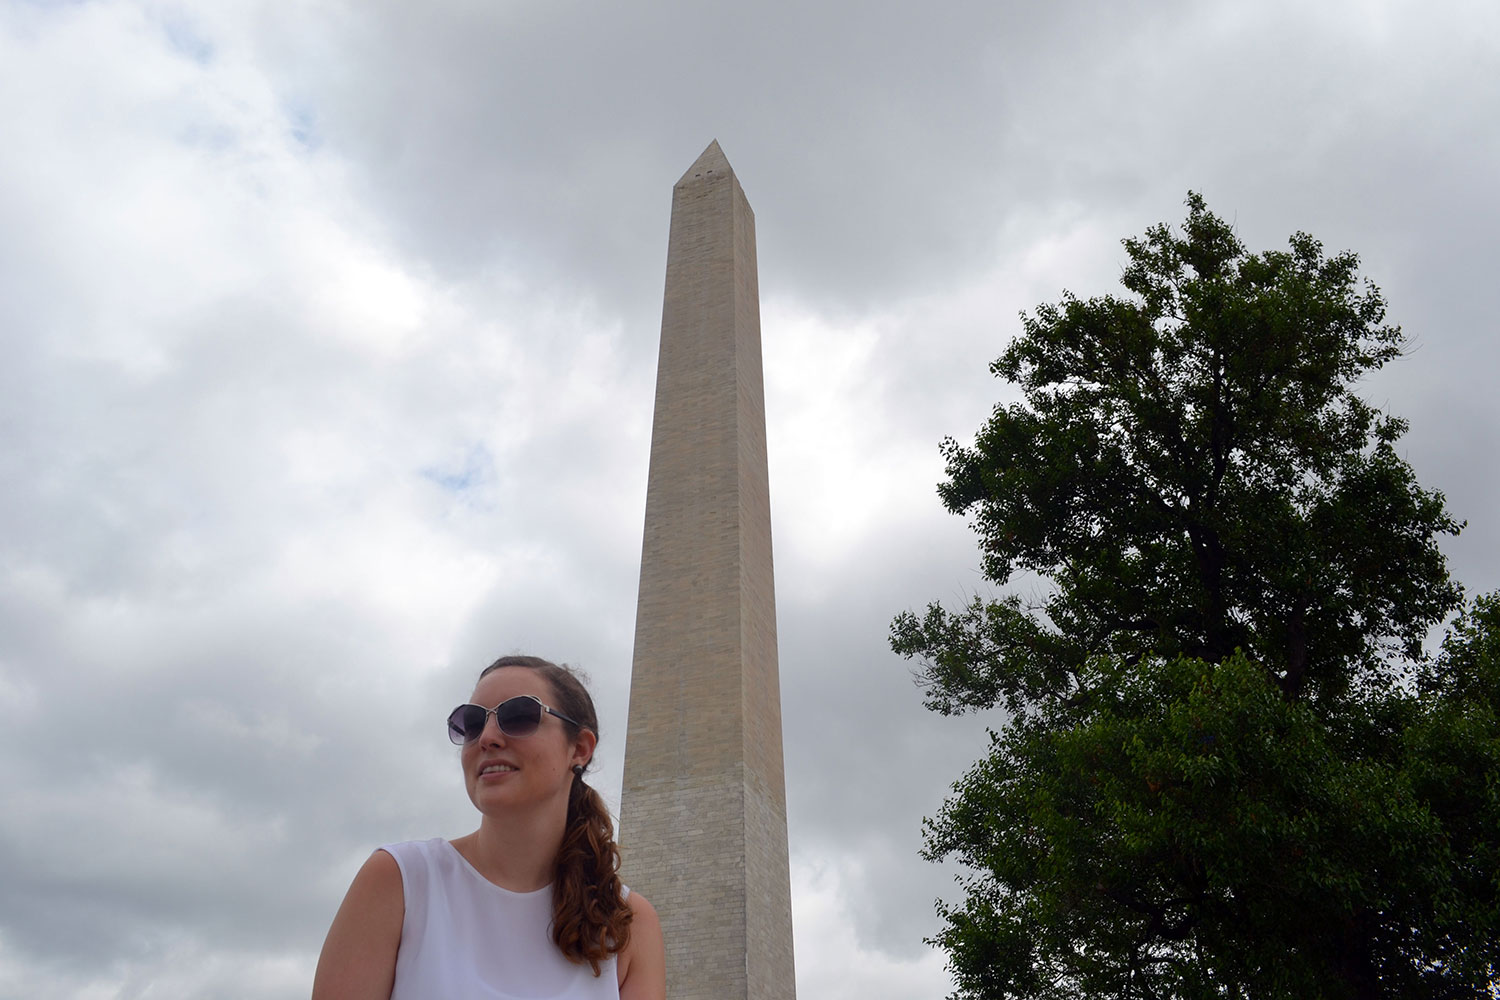 Travel Diary: Washington, D.C. | Part 1 - White House, Monuments & Co - Washington 1